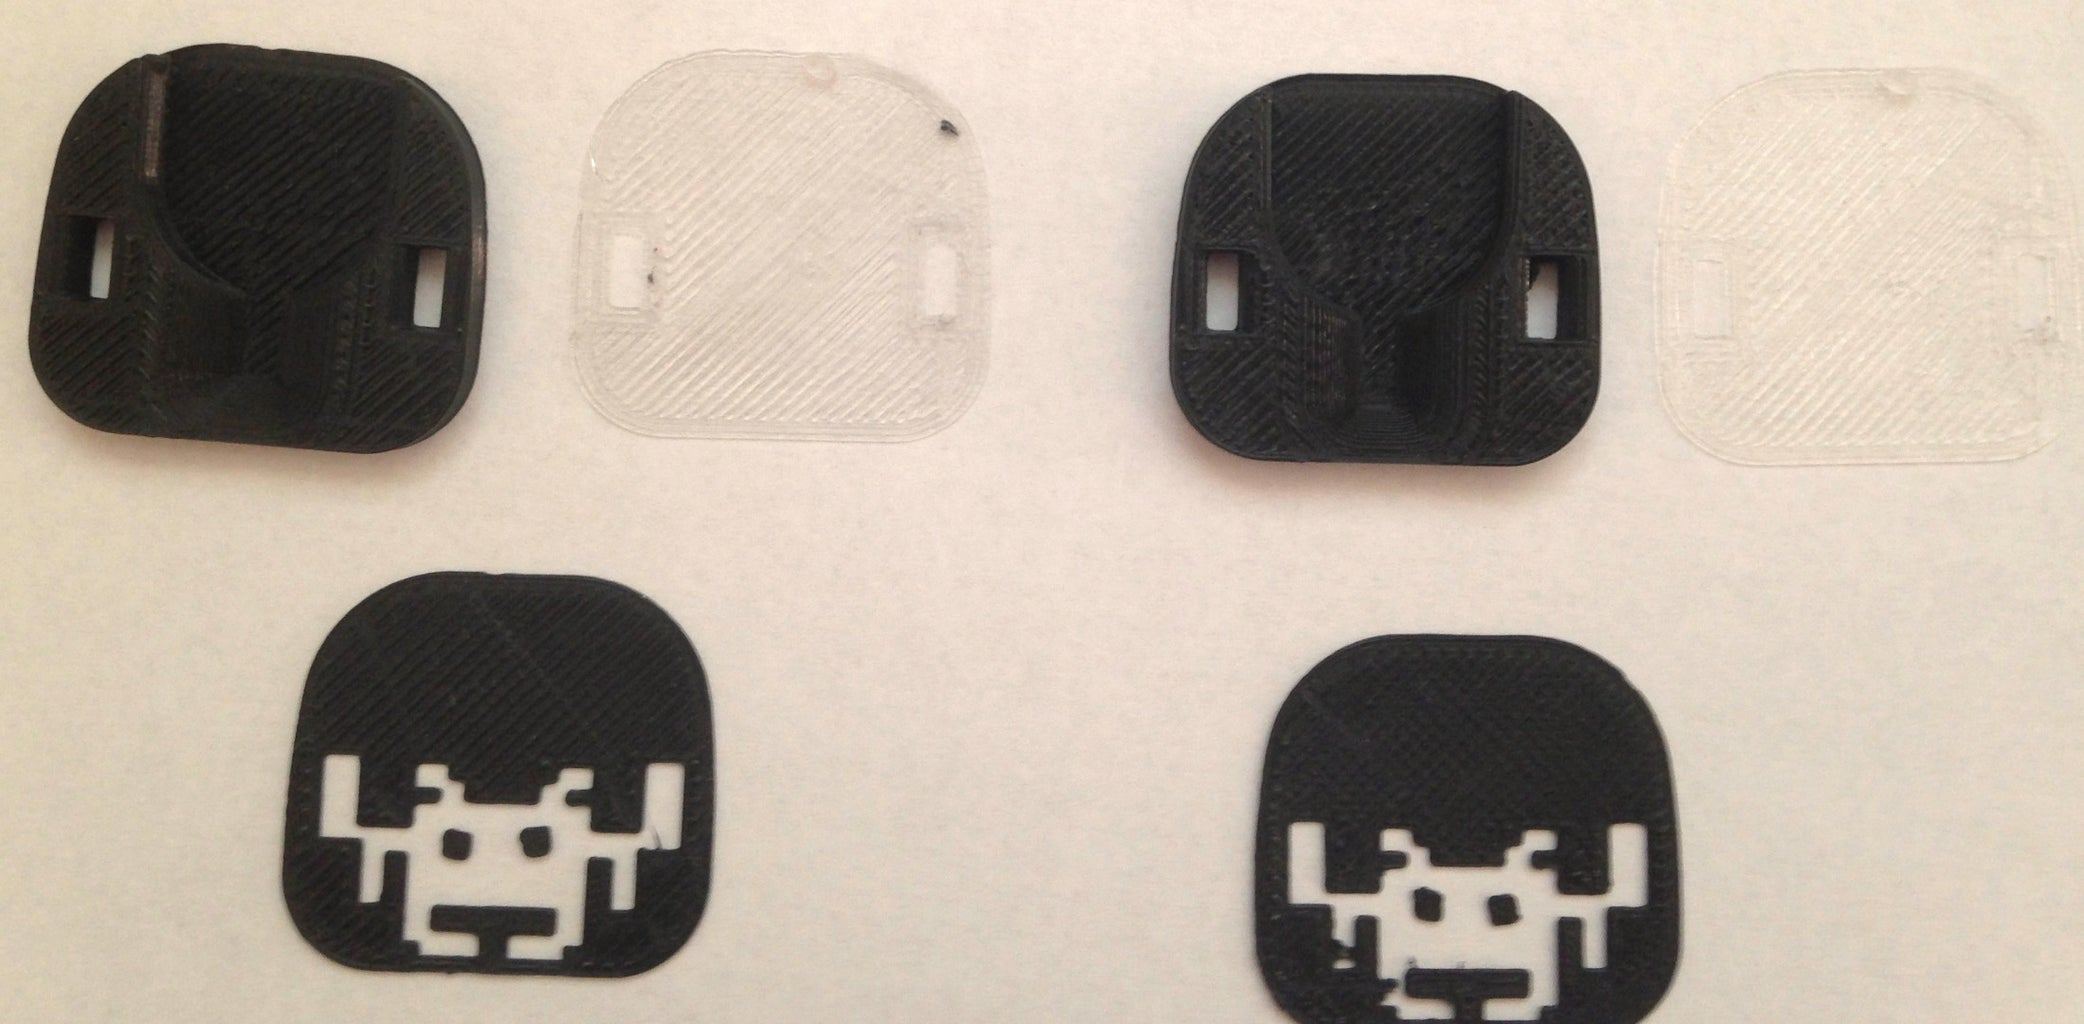 3D Print the STL for the LED Space Invaders